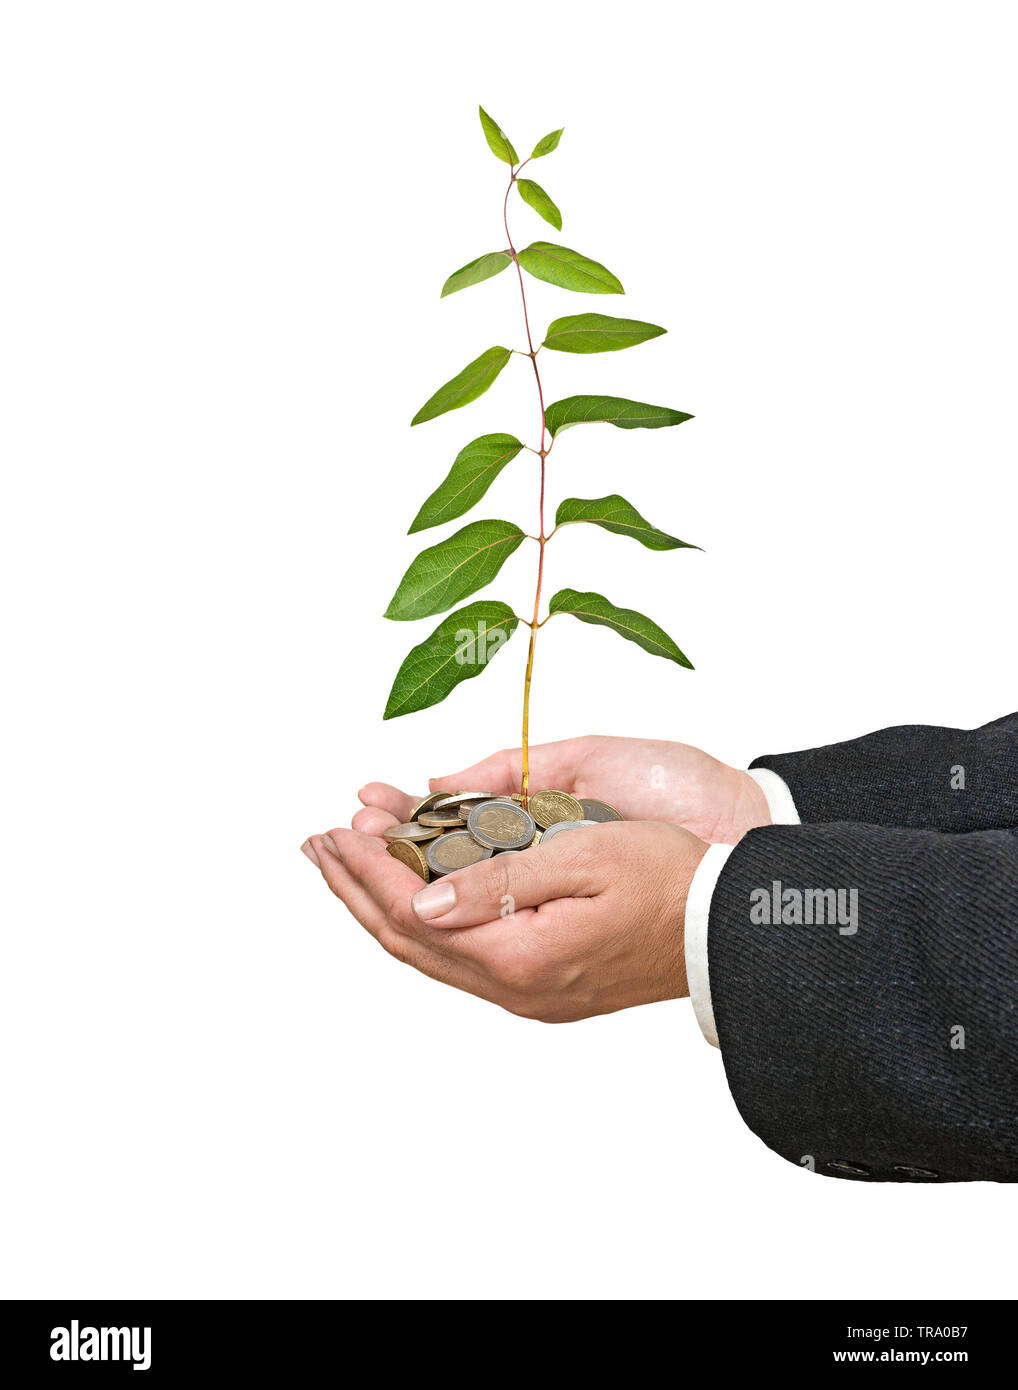 Palms with a plant growng from pile of coins - Stock Image